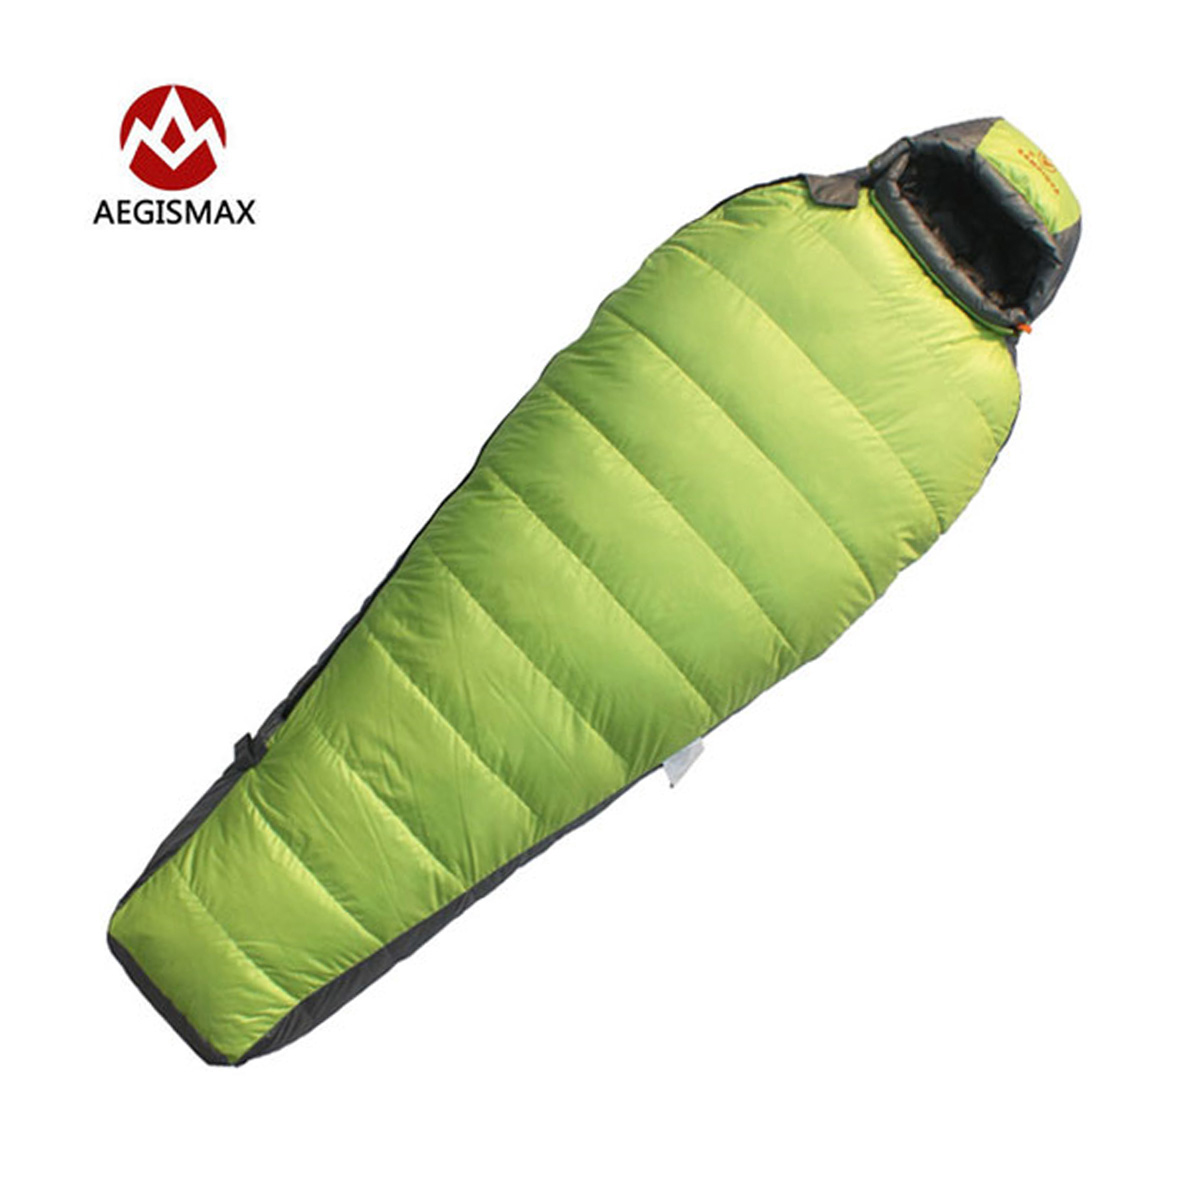 Winter water coldproof sleeping bag panpipe 1000 - 22 600 fluffy white goose down filling men/WOMEN(China (Mainland))